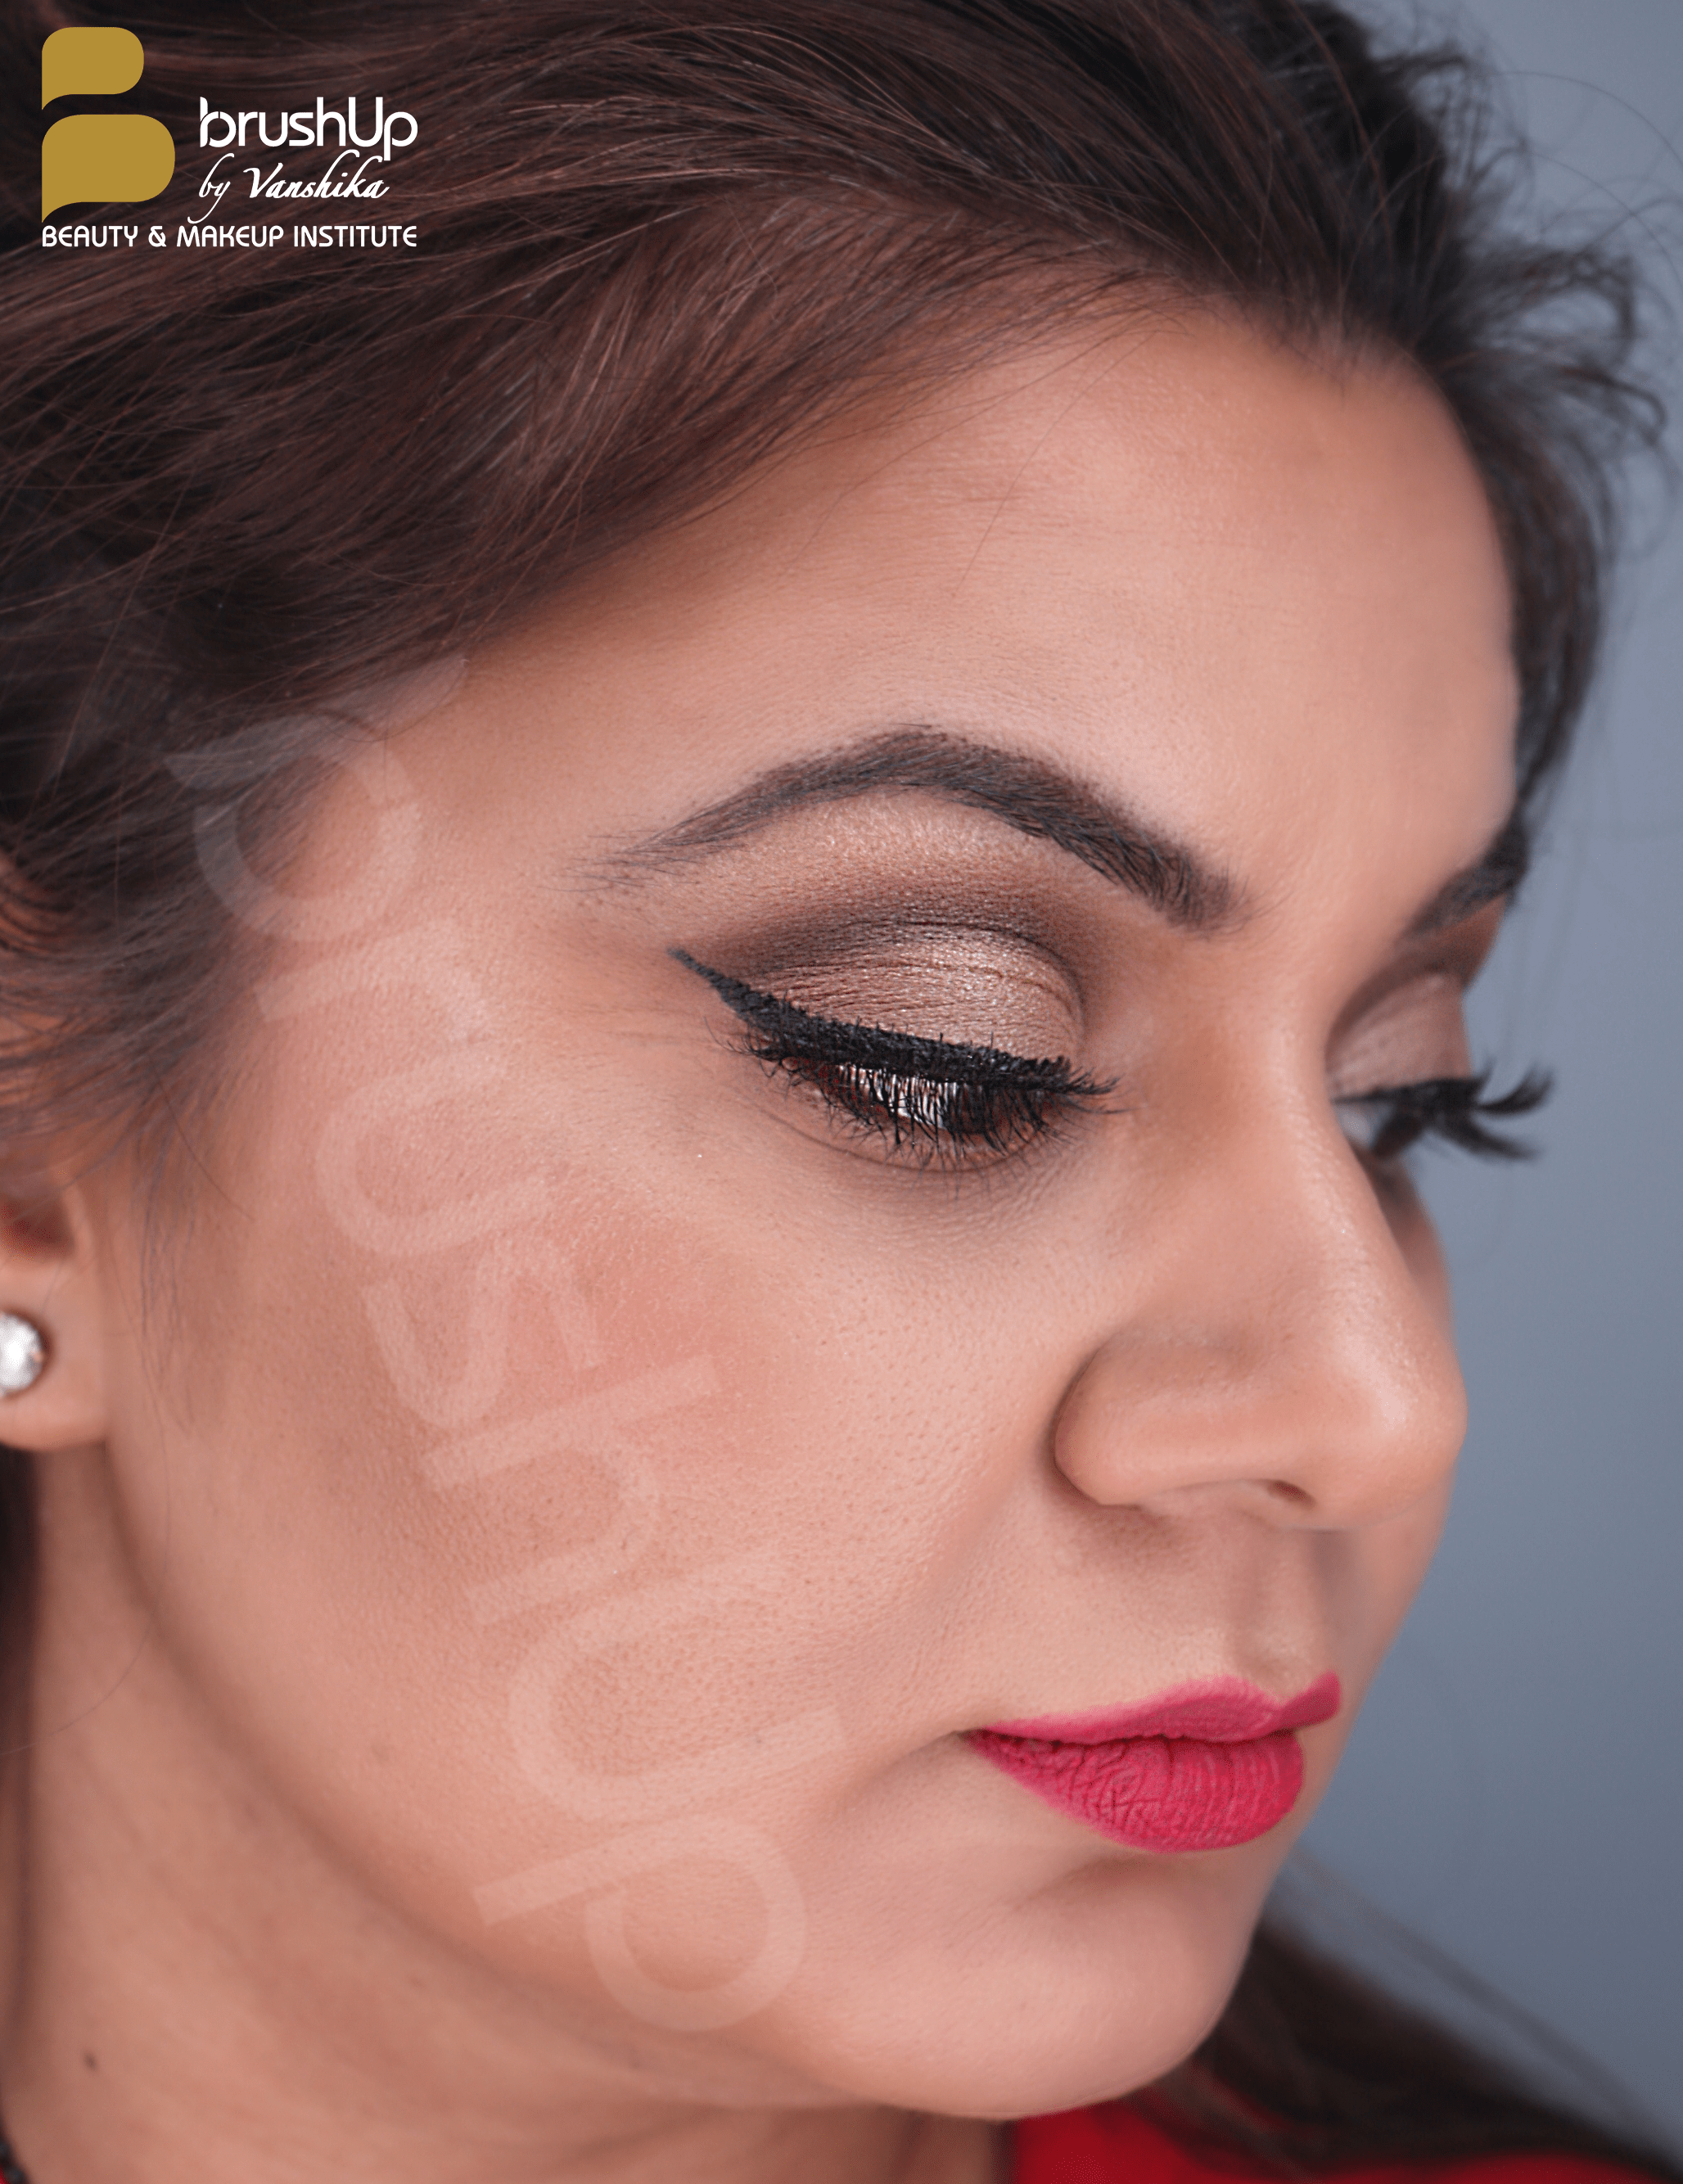 Makeup artist course in delhi fees